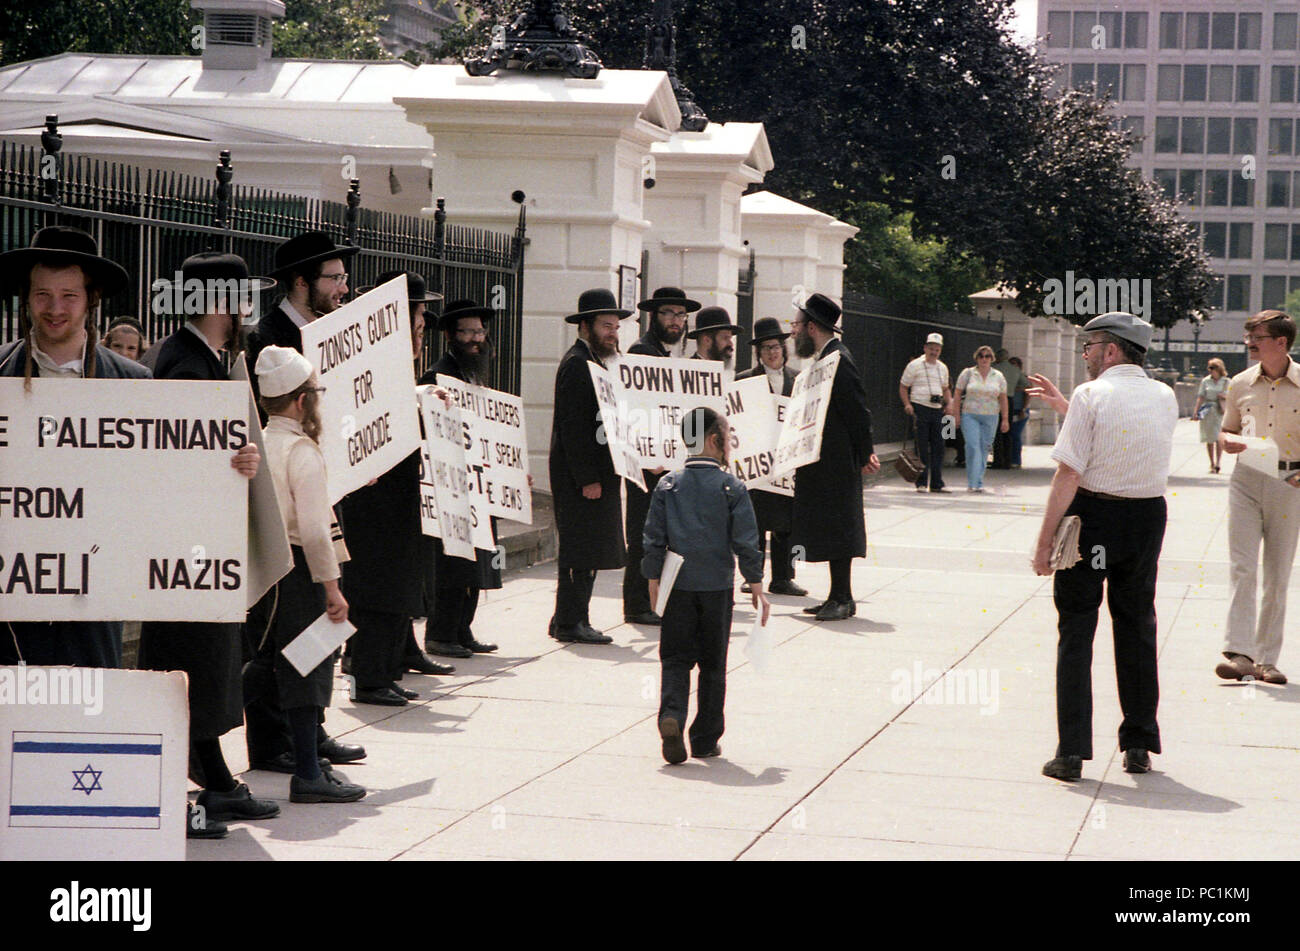 Jews protesting in front of the White House against Zionism. 1982, Washington D.C. - Stock Image